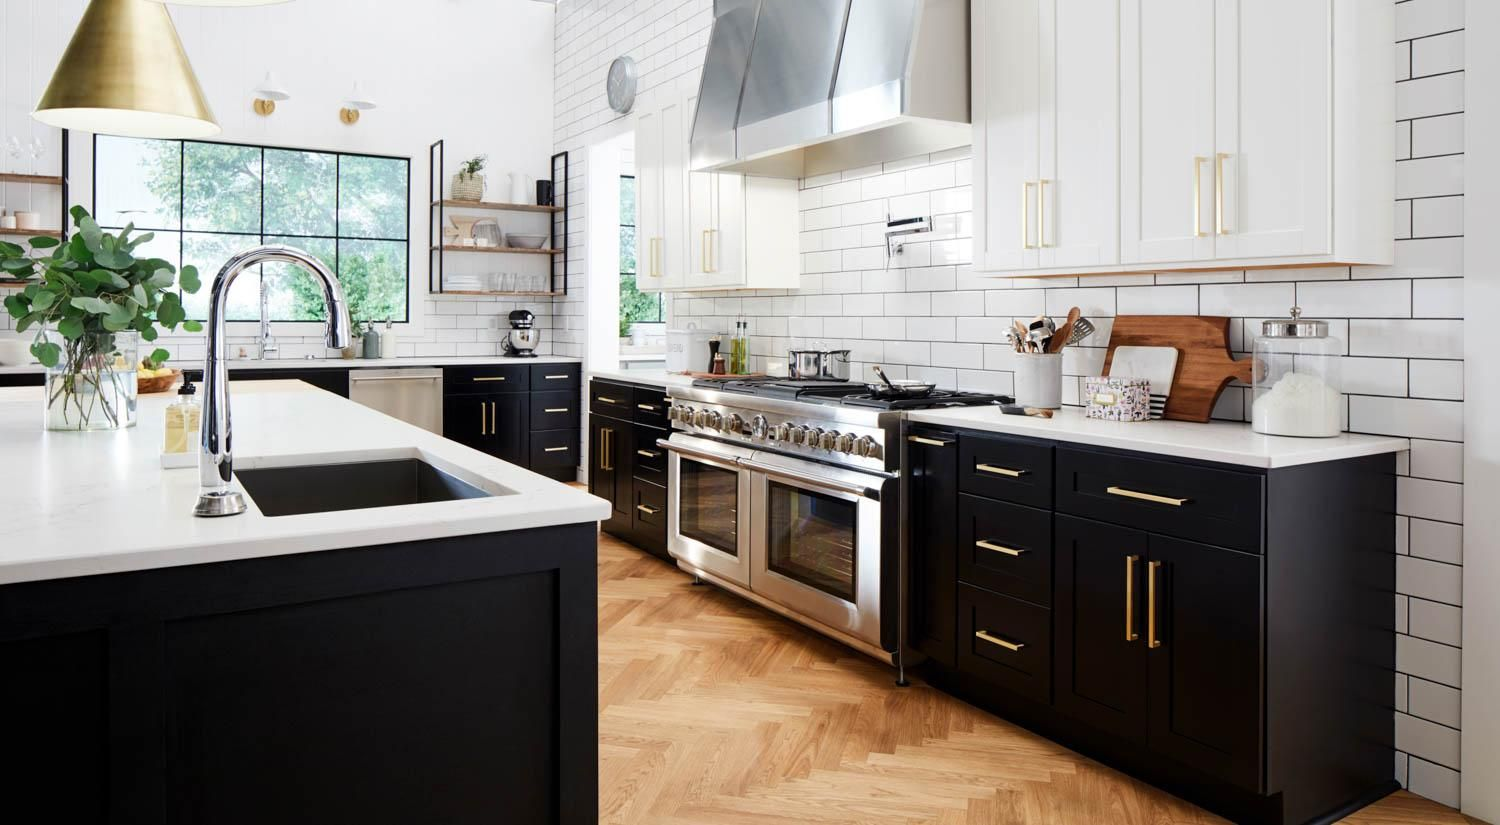 This Is The Absolute Dream Kitchen The Black And White Cabinets Gold Accents Massive Gas Burning Ra Kitchen Design Traditional Kitchen Remodel Home Kitchens